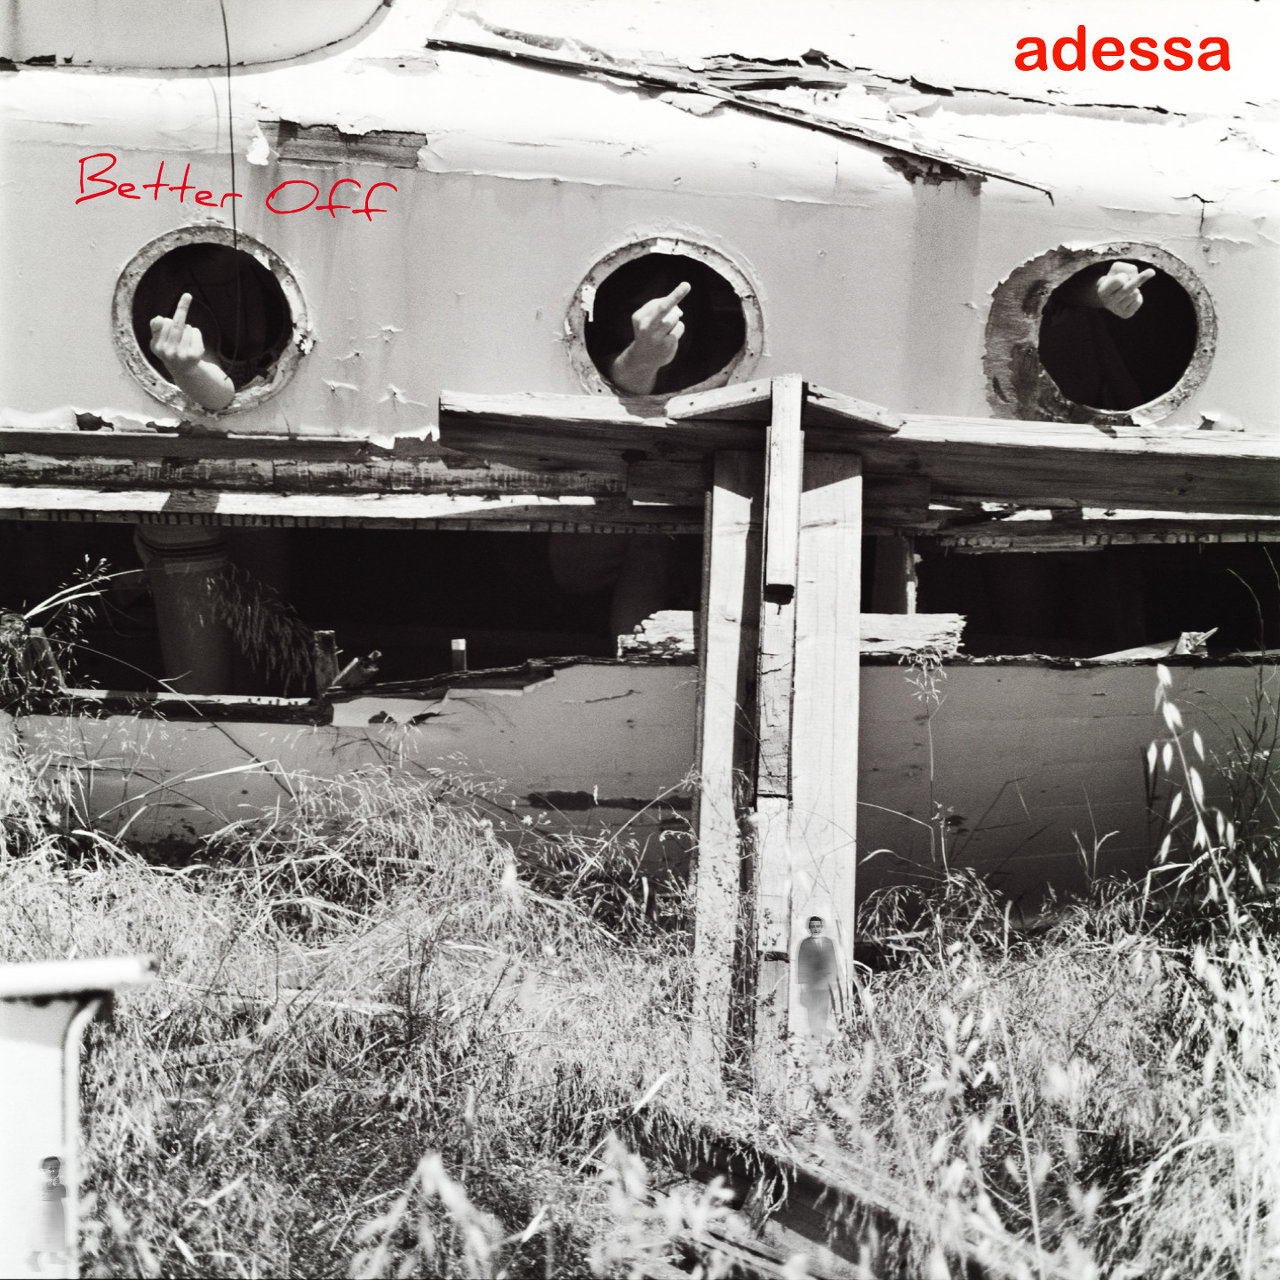 Better-Off_adessa_cover_1.jpg